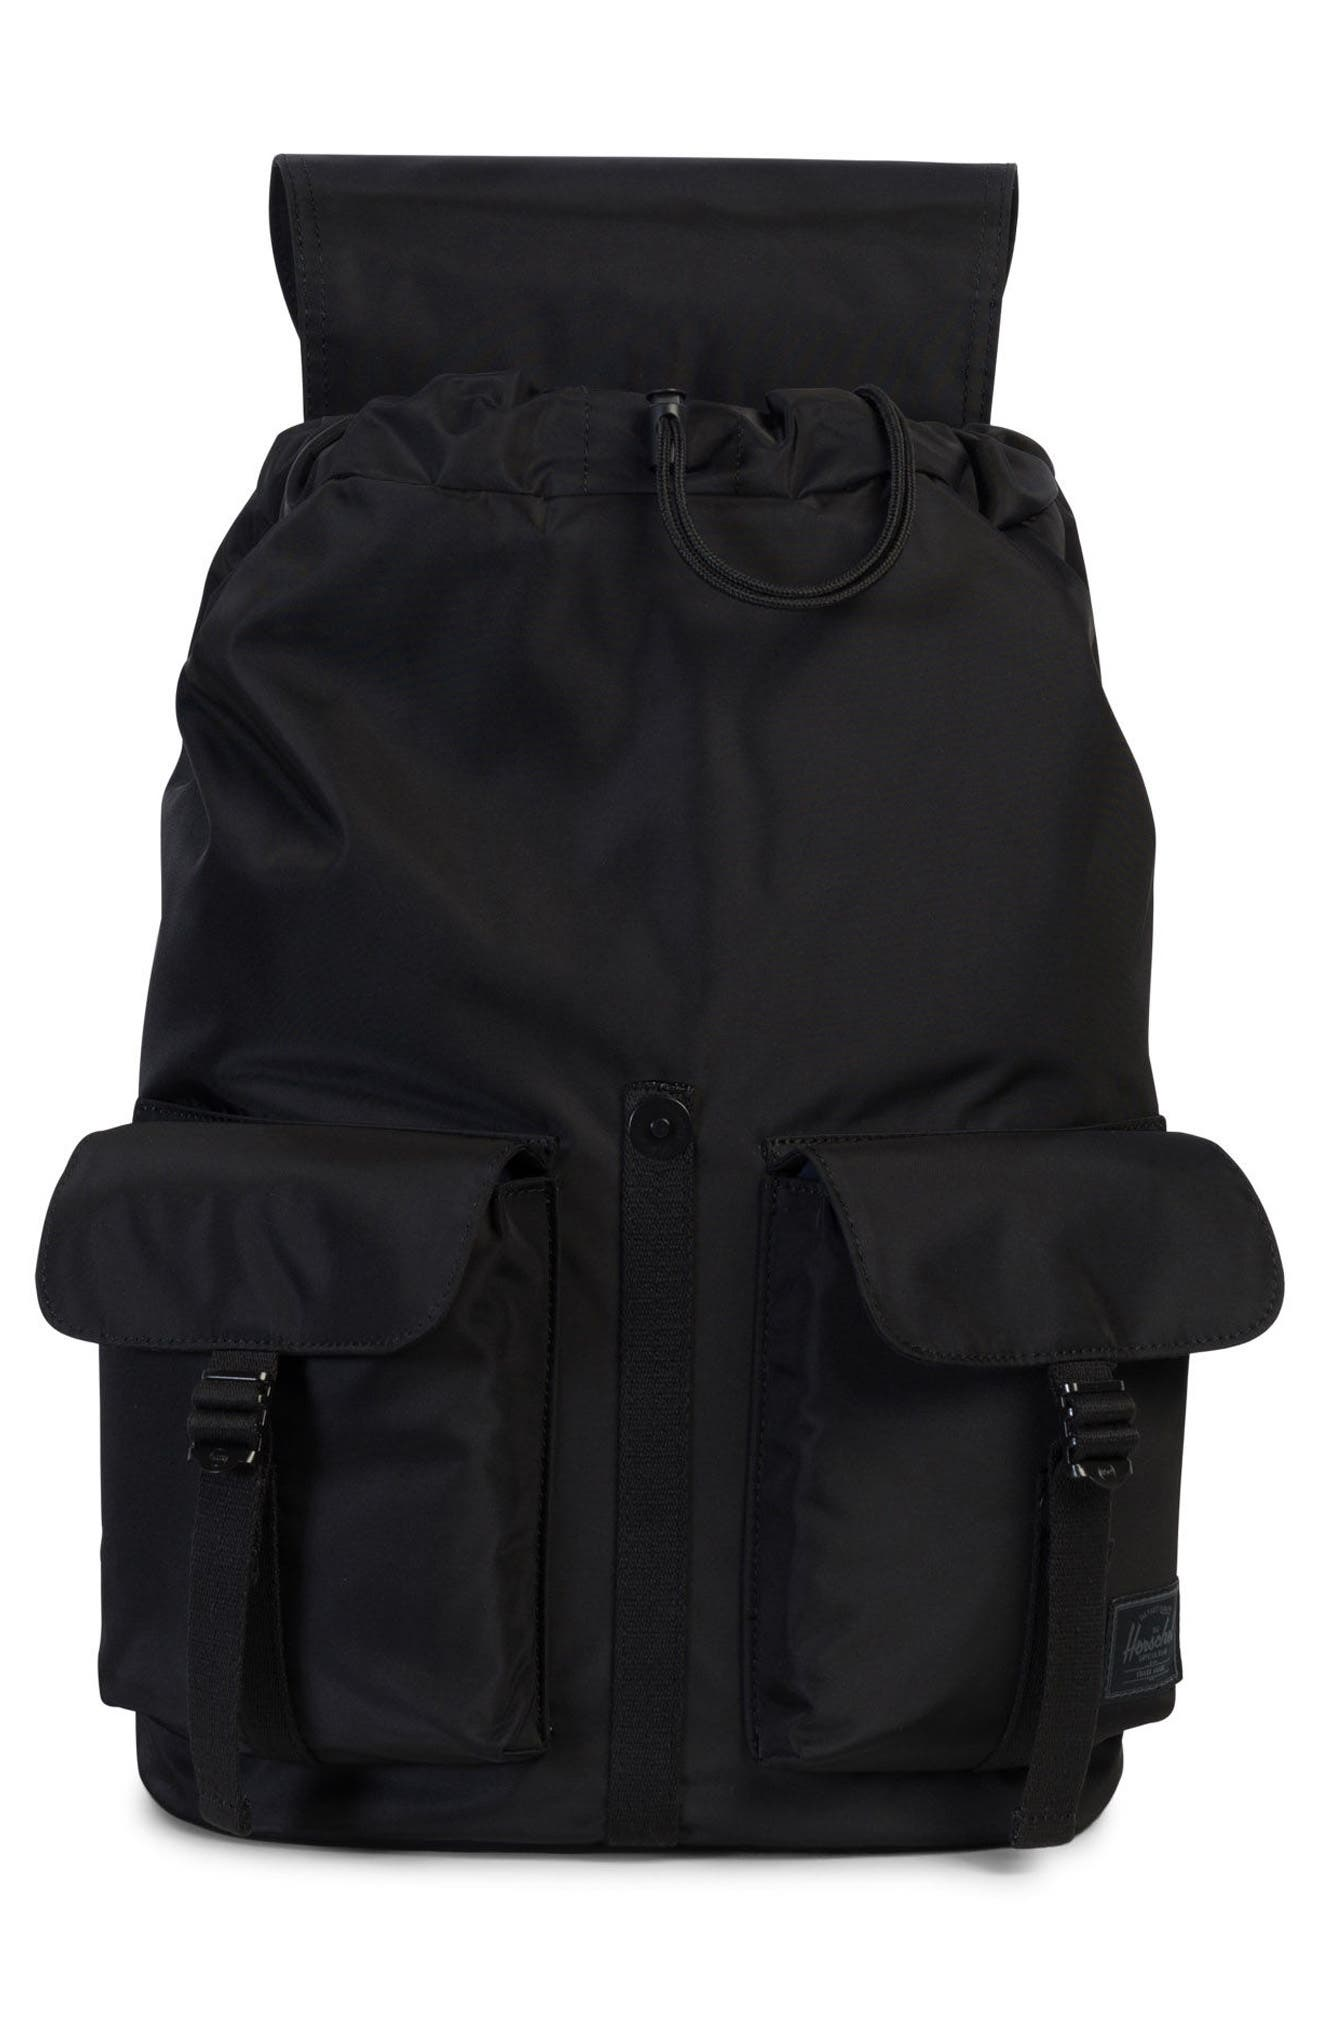 Dawson Surplus Collection Backpack,                             Alternate thumbnail 8, color,